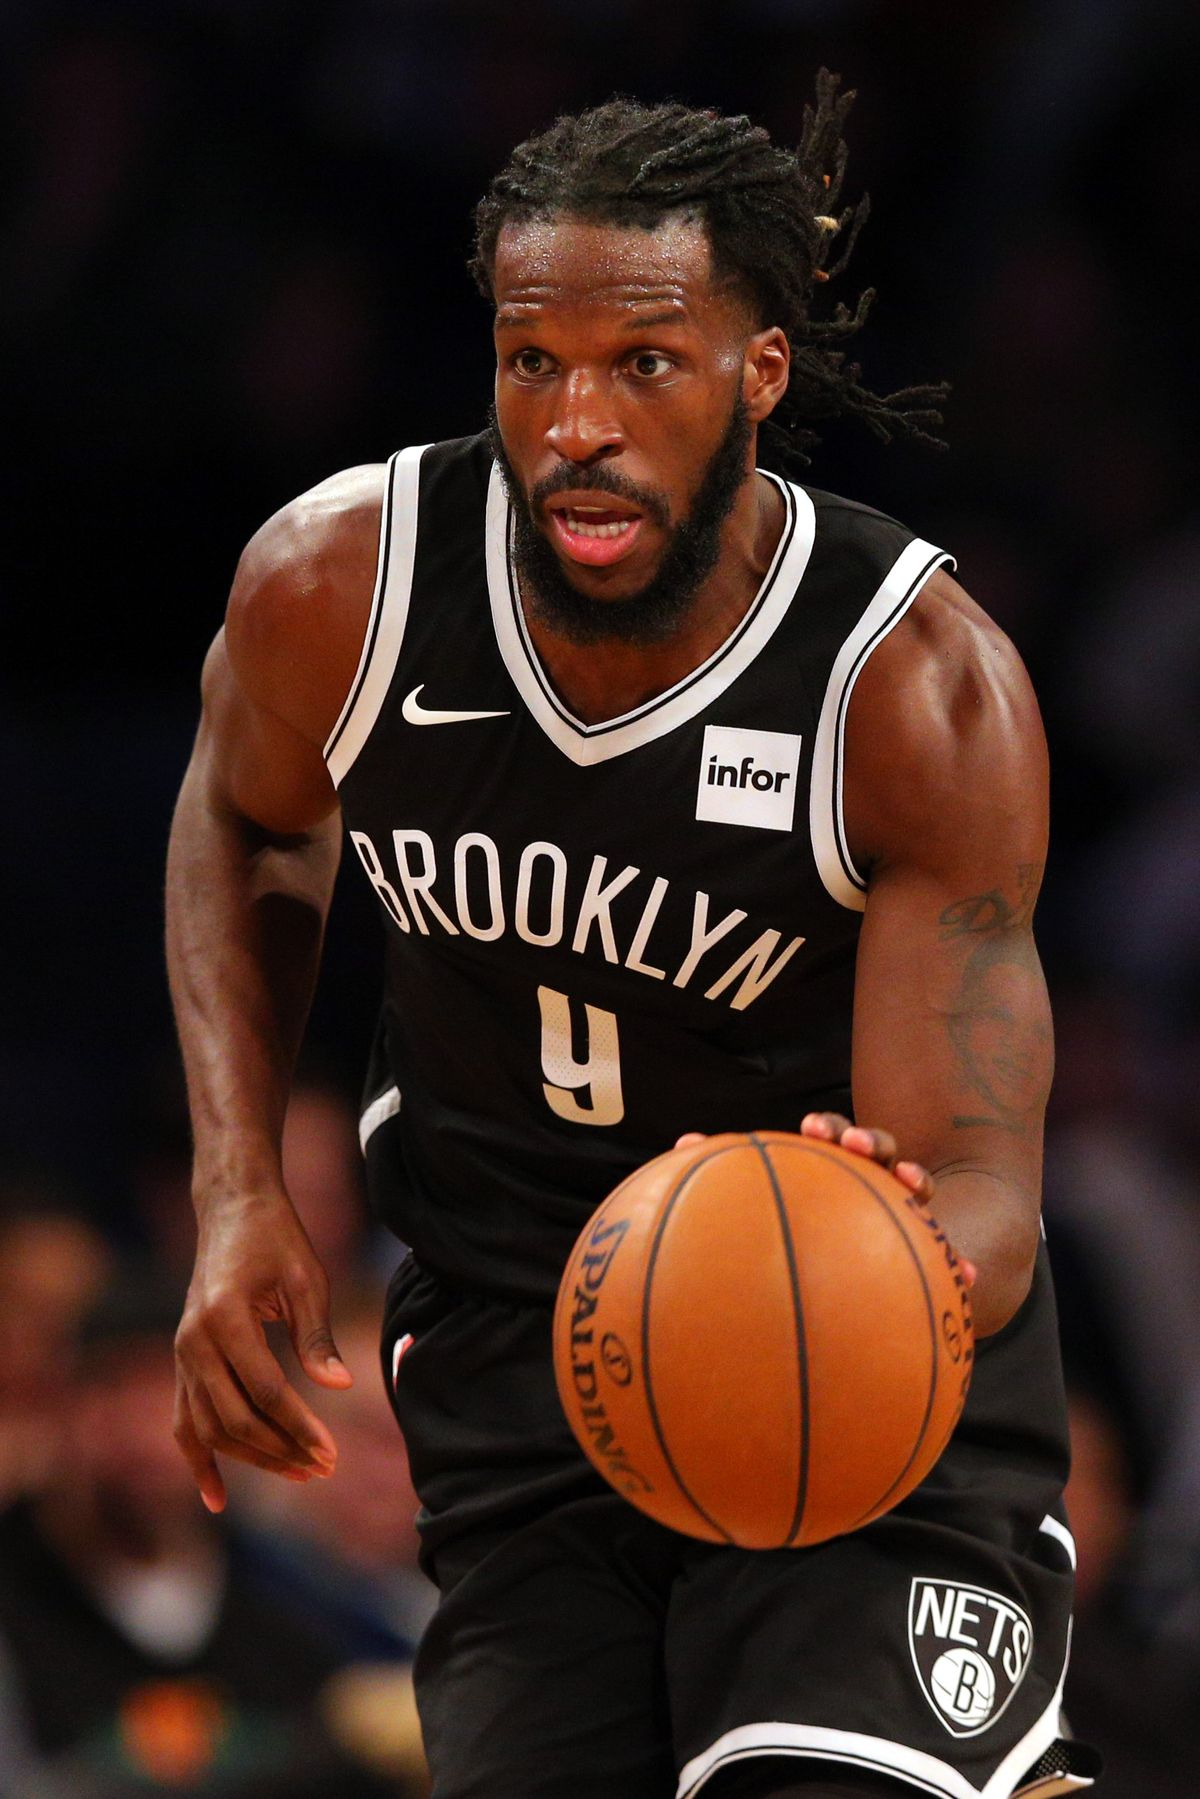 NBA: Cleveland Cavaliers at Brooklyn Nets